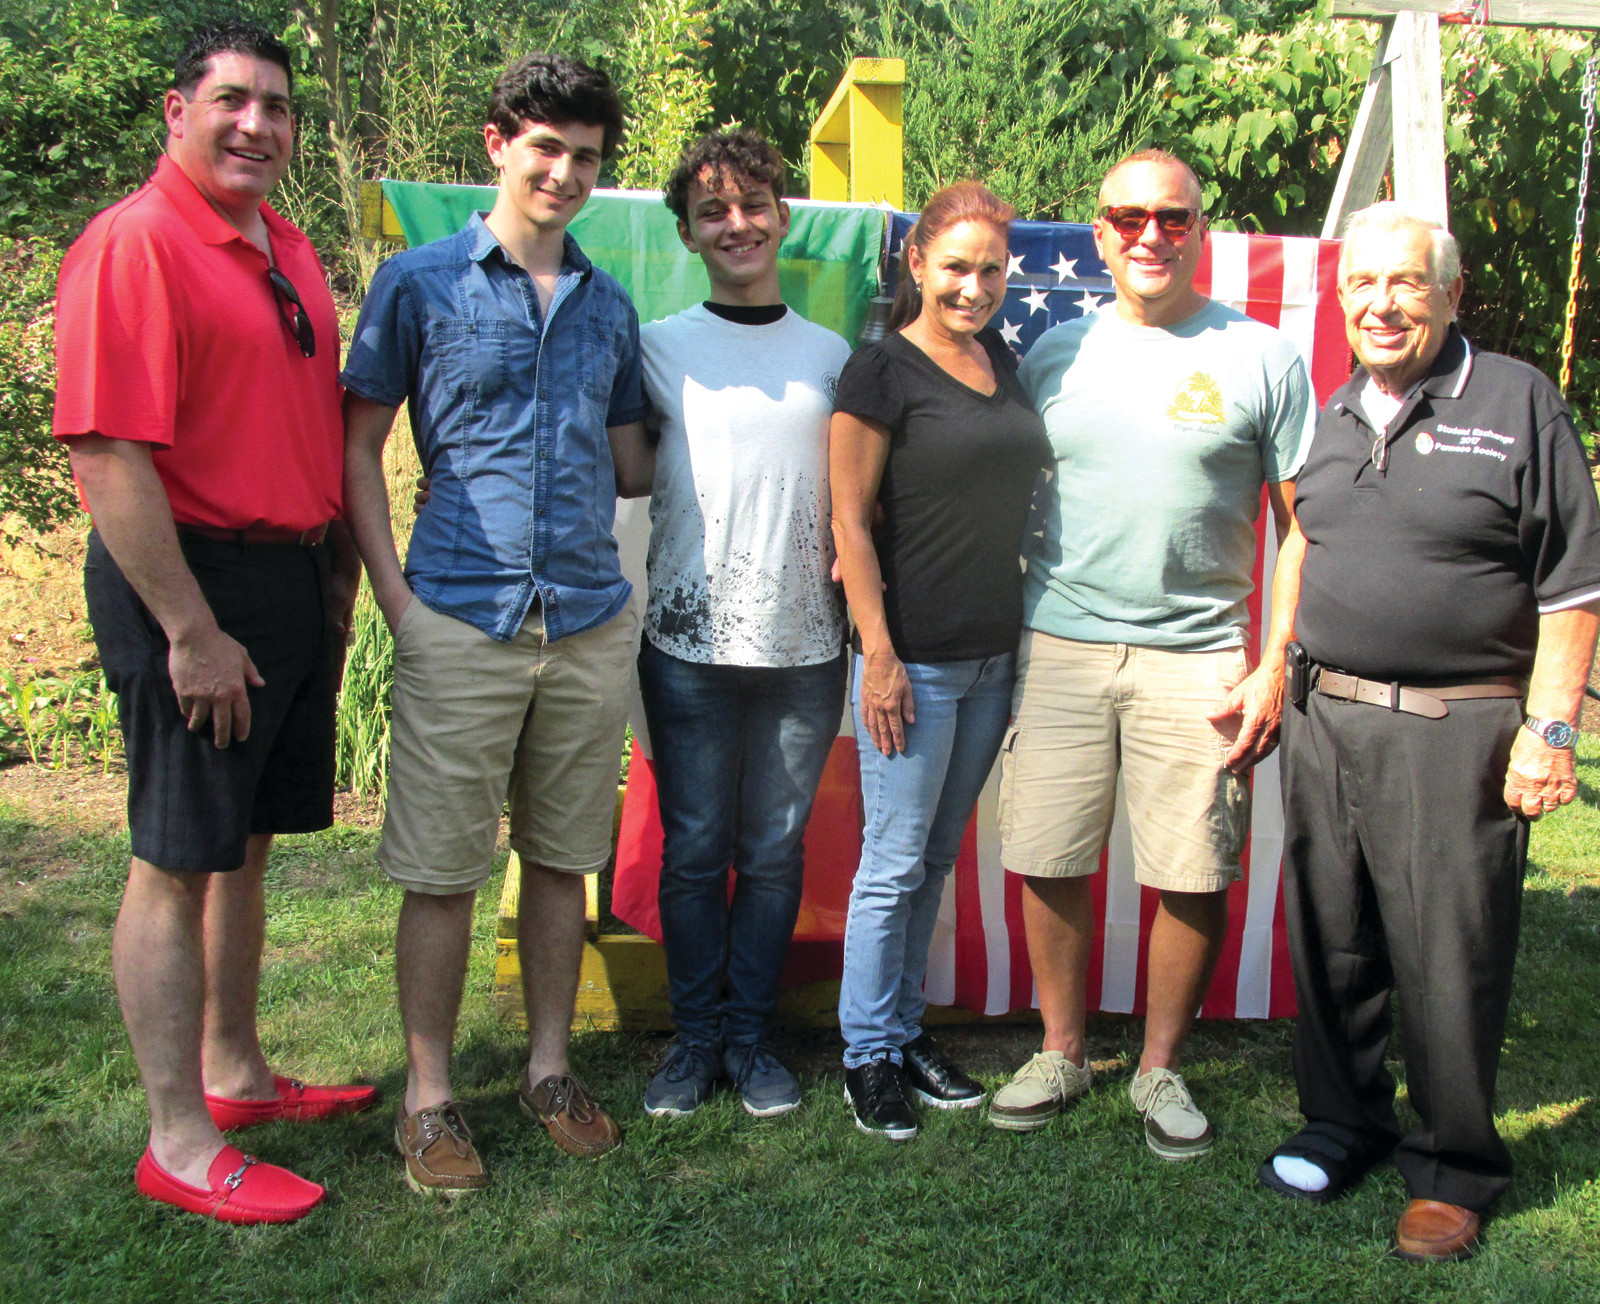 "HAPPY HOSTS: Johnston State Rep. Stephen Ucci (left) served as special host for guests from Panni Foggia, Italy during Monday's clambake at the home of his sister Susan Mansolillo and is joined by the Mollicone family who has opened their home to ""Jerry"" Francavilla from Italy."